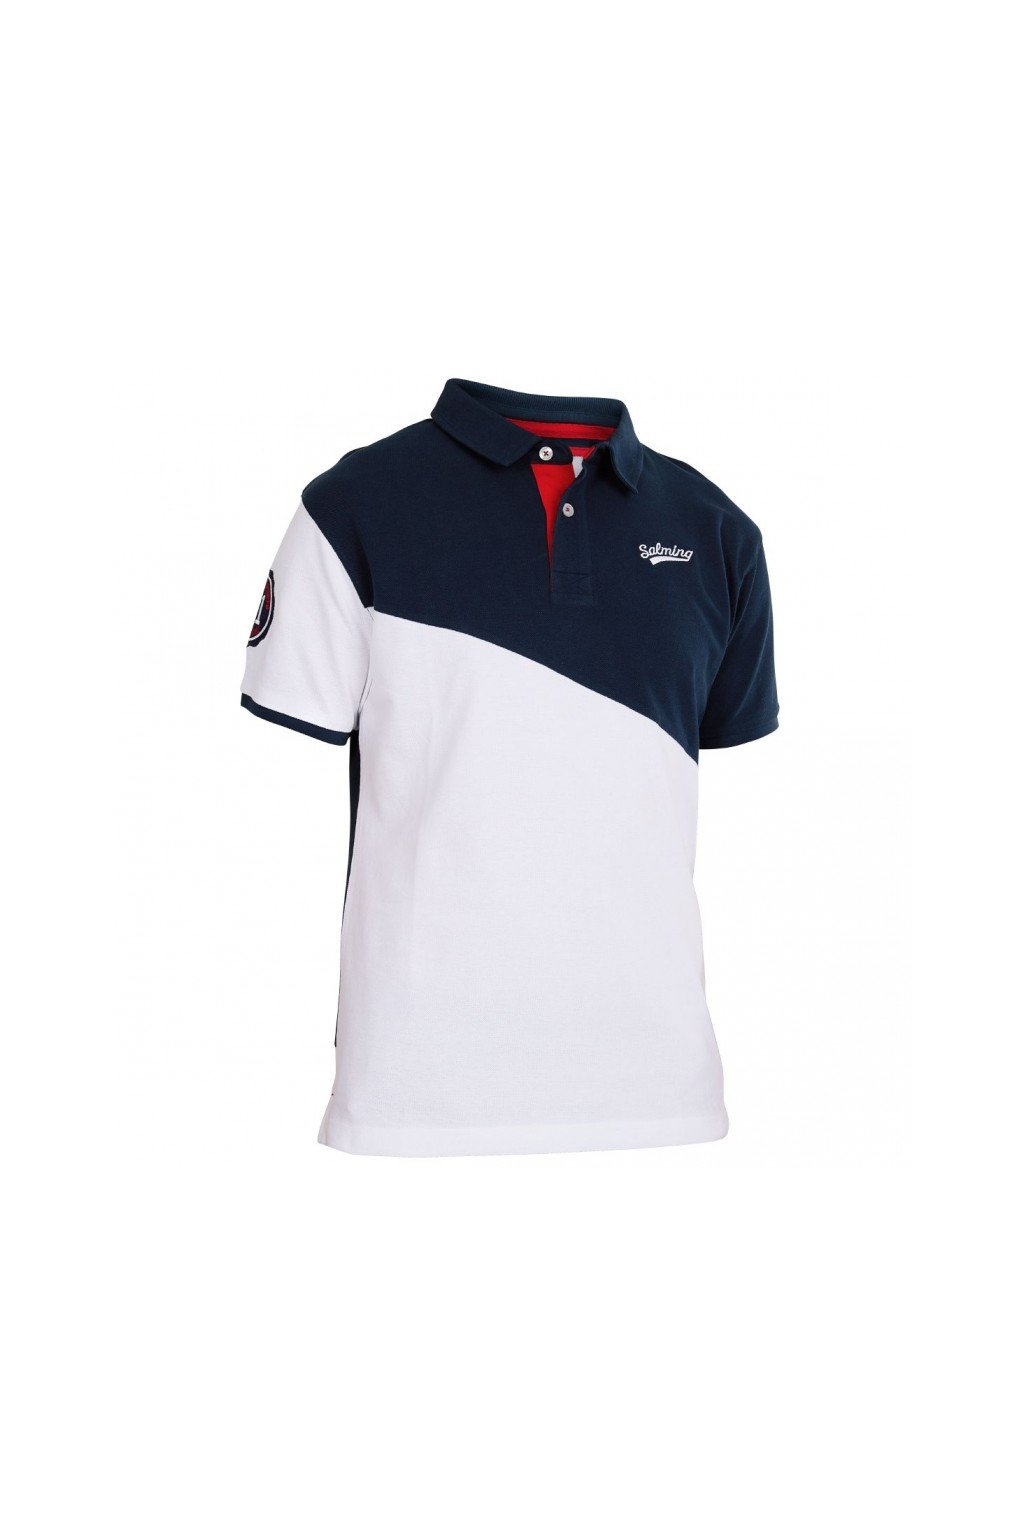 salming oak polo navy white xxl